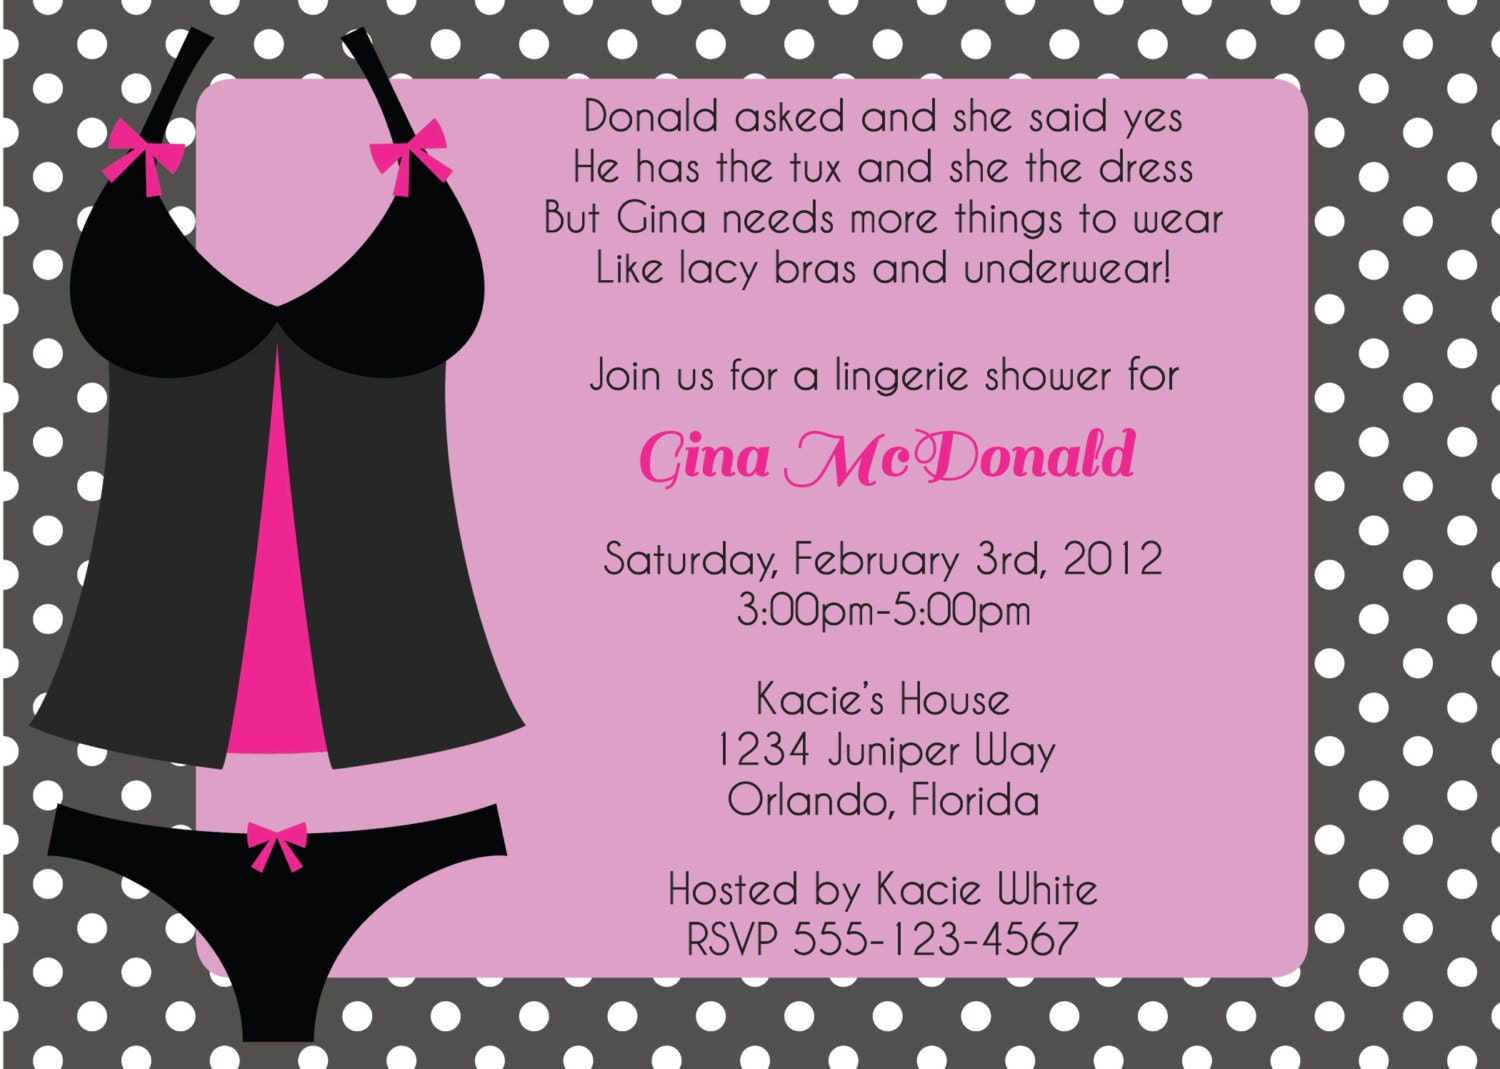 Lingerie Bridal Shower Invitations was very inspiring ideas you may choose for invitation ideas